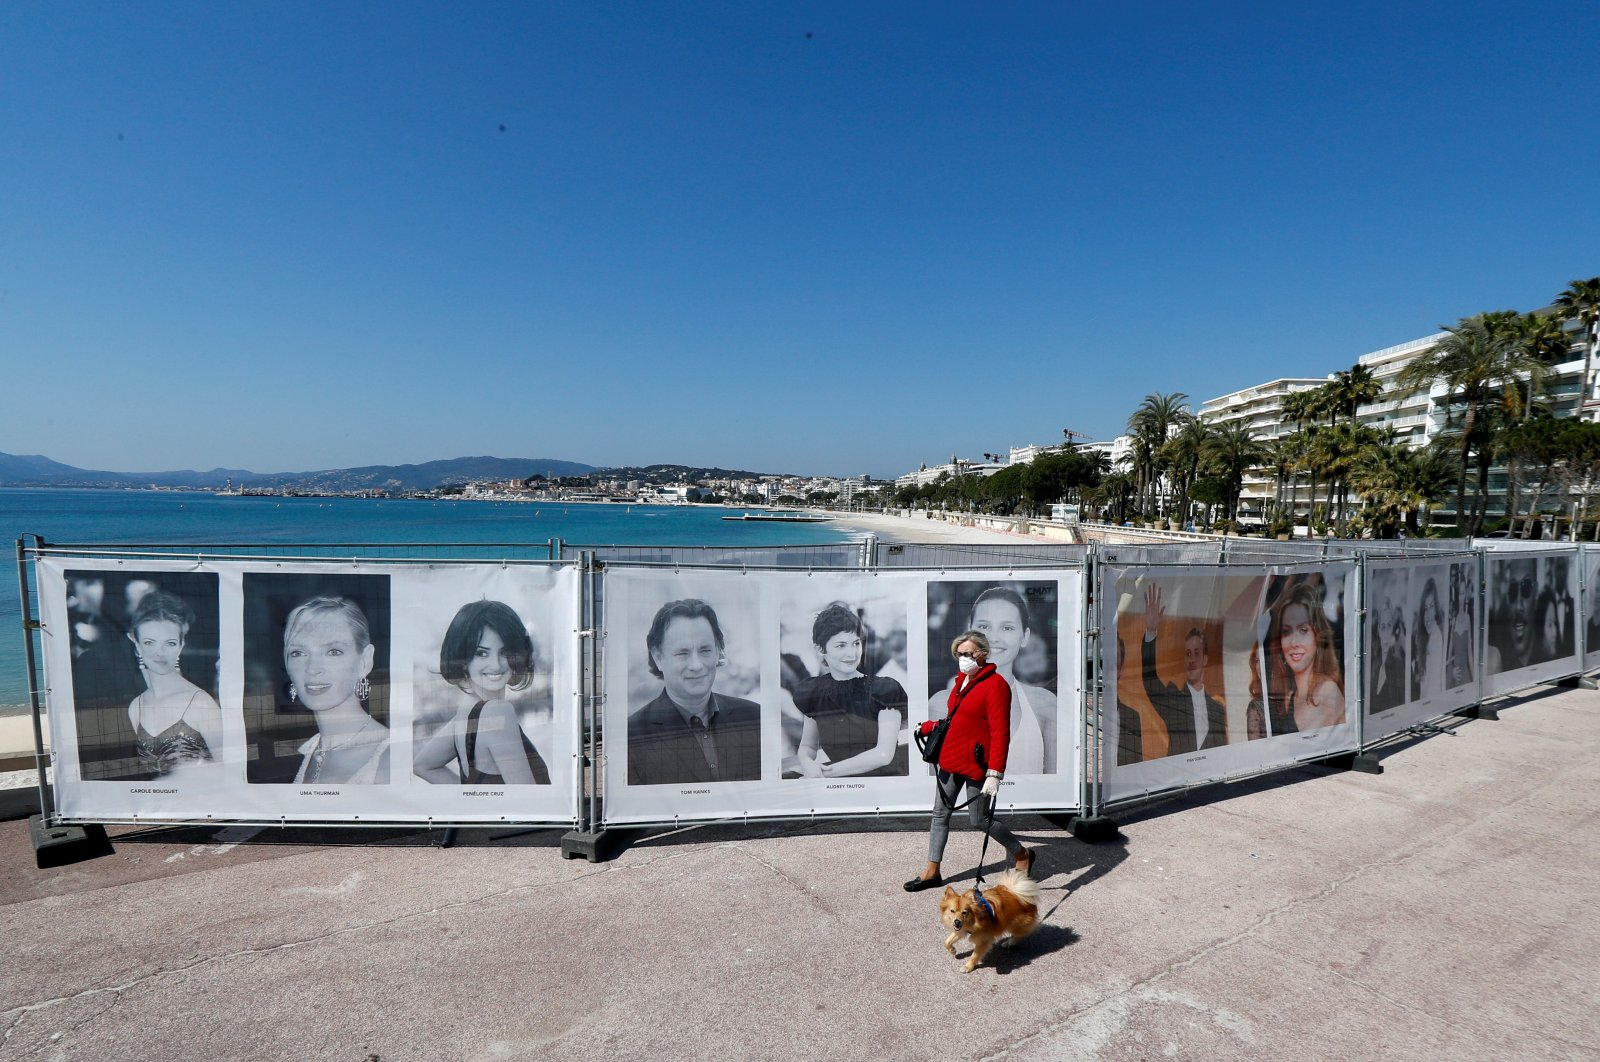 A woman walks past photos of the Cannes Film Festival on the Croisette in Cannes as a lockdown is imposed to slow the rate of the coronavirus in France, March 18, 2020. (Reuters Photo)